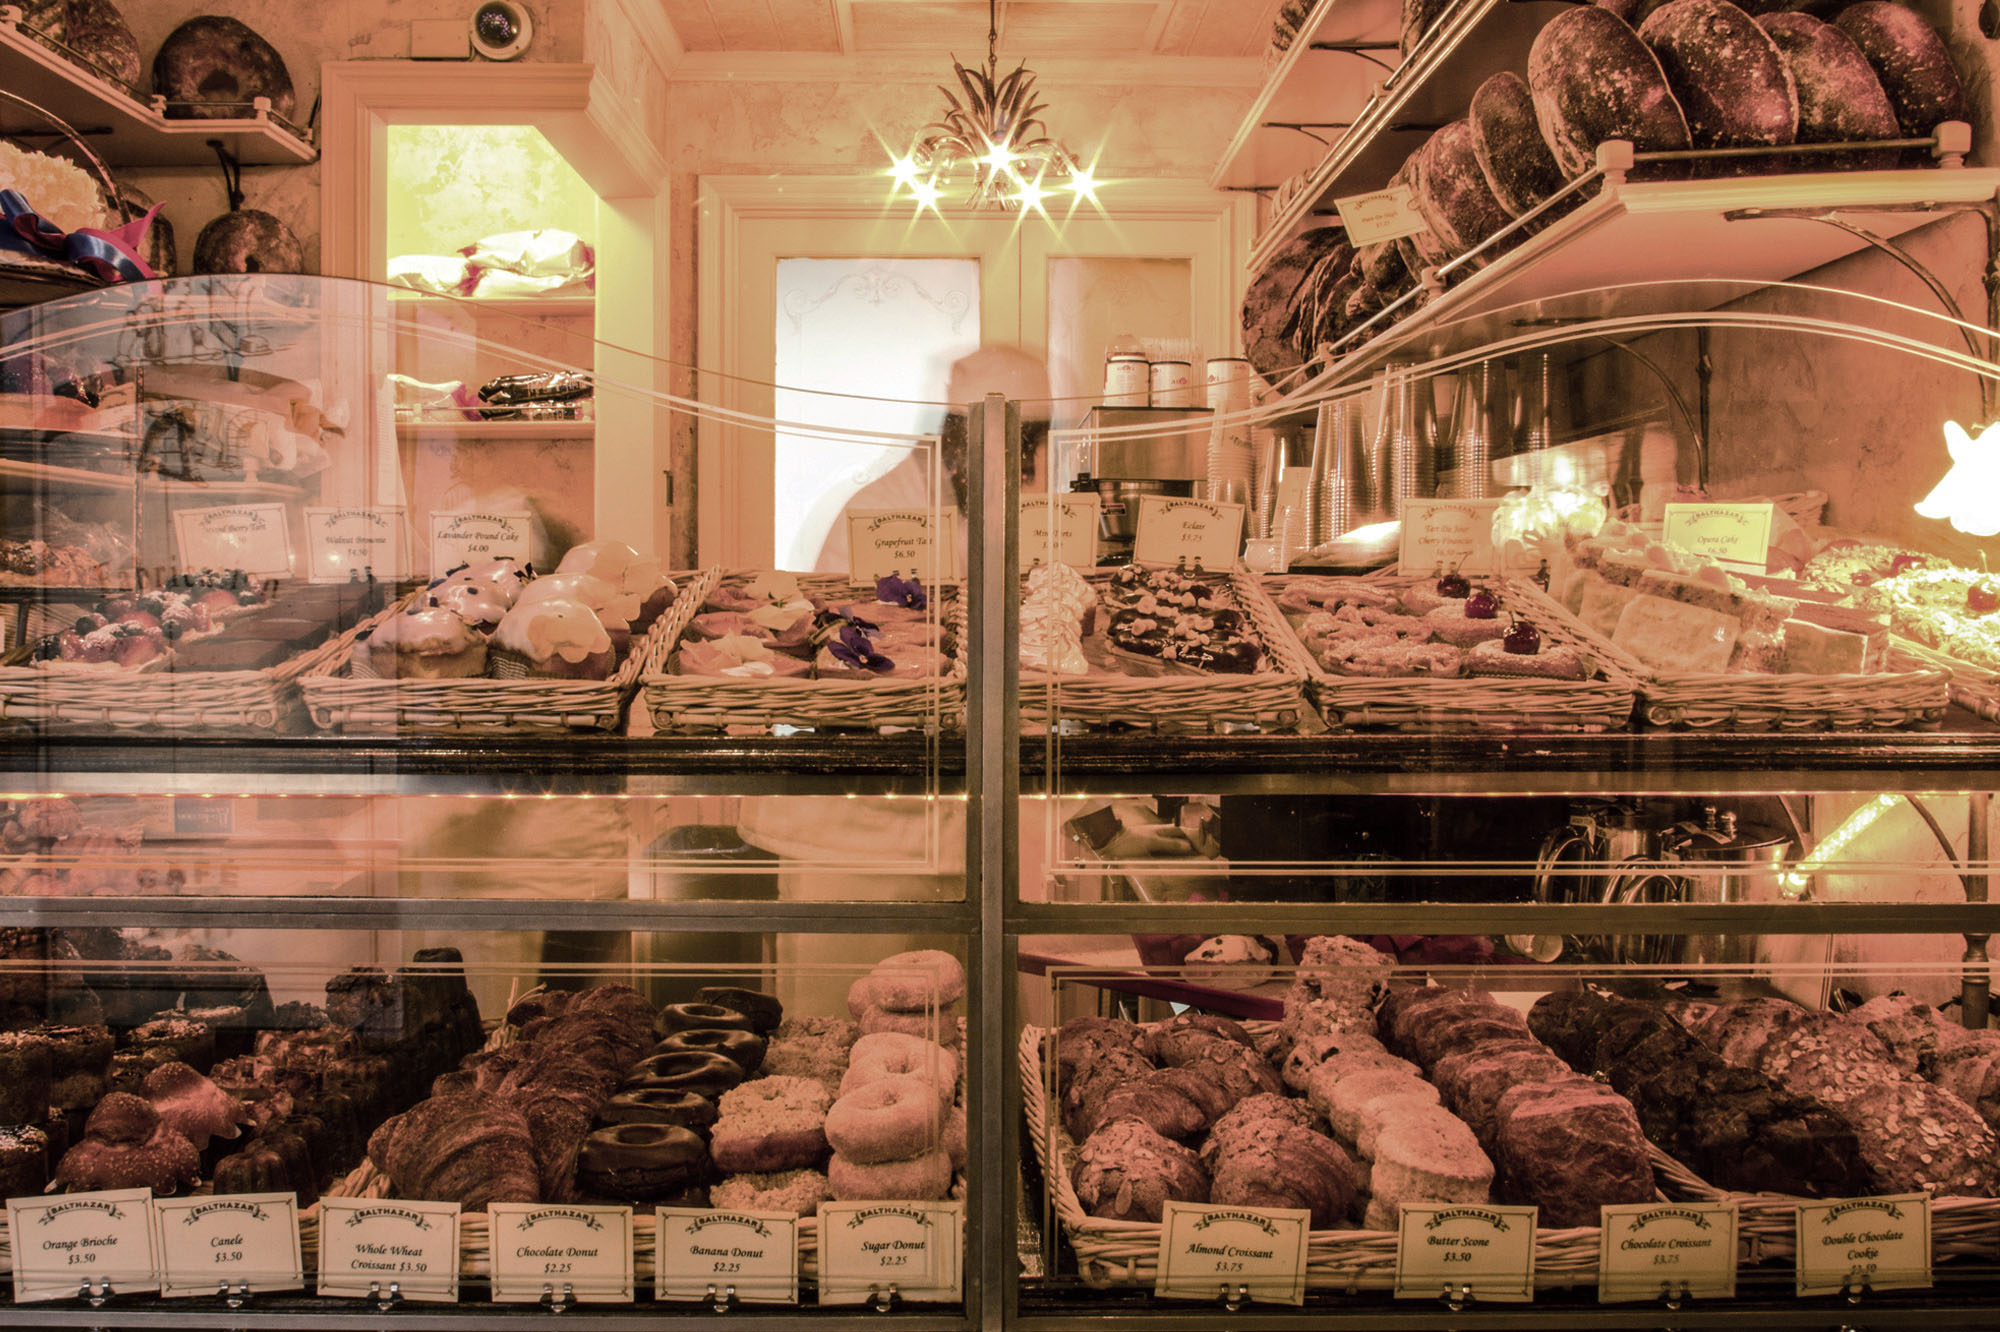 Since 1997 Balthazar Bakery Has Created Breads And Pastries For Customers Who Wish To Enjoy A Taste Of At Home Or Work